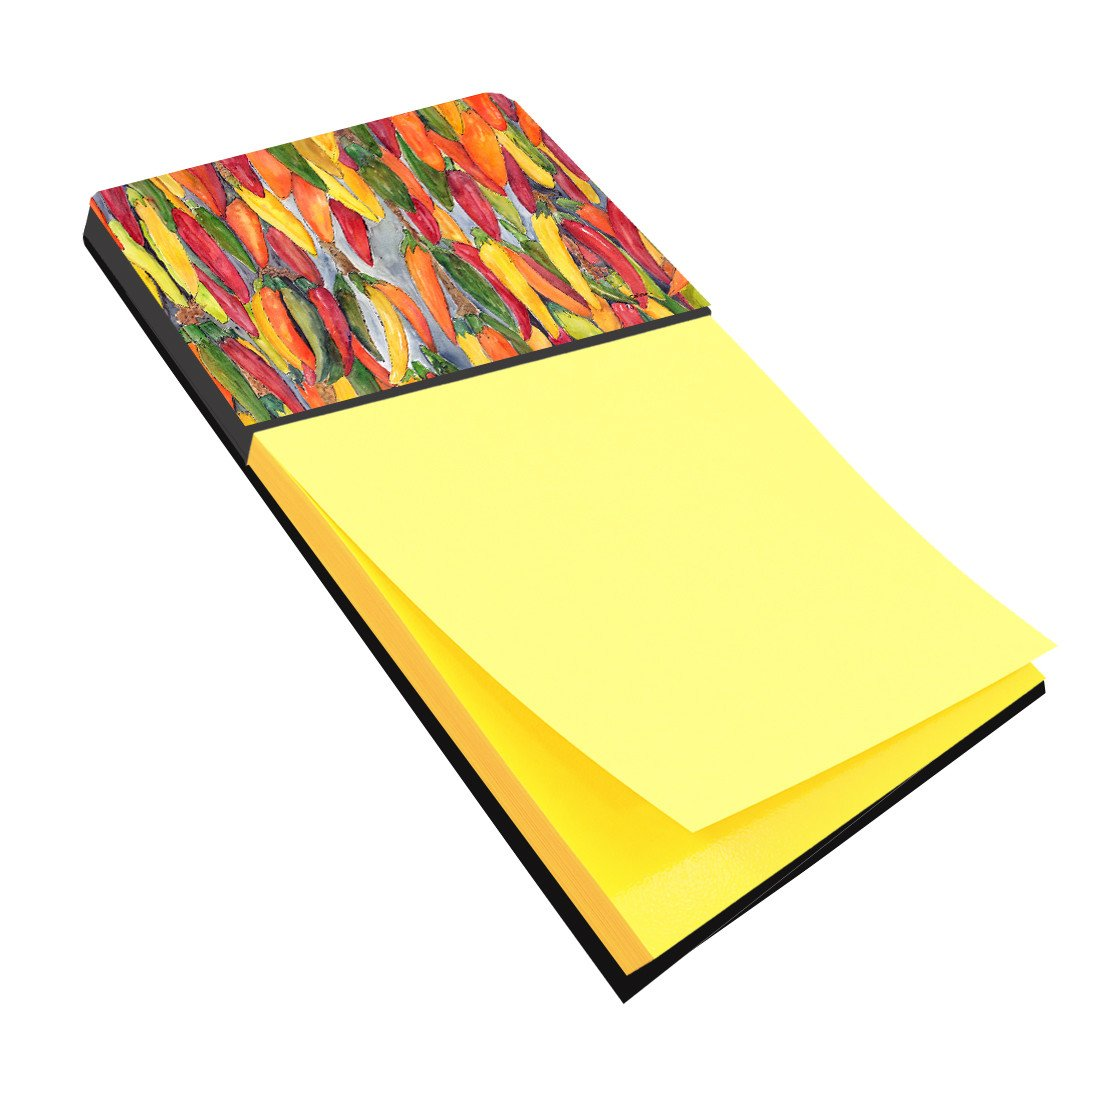 Hot Peppers Refiillable Sticky Note Holder or Postit Note Dispenser 8893SN by Caroline's Treasures